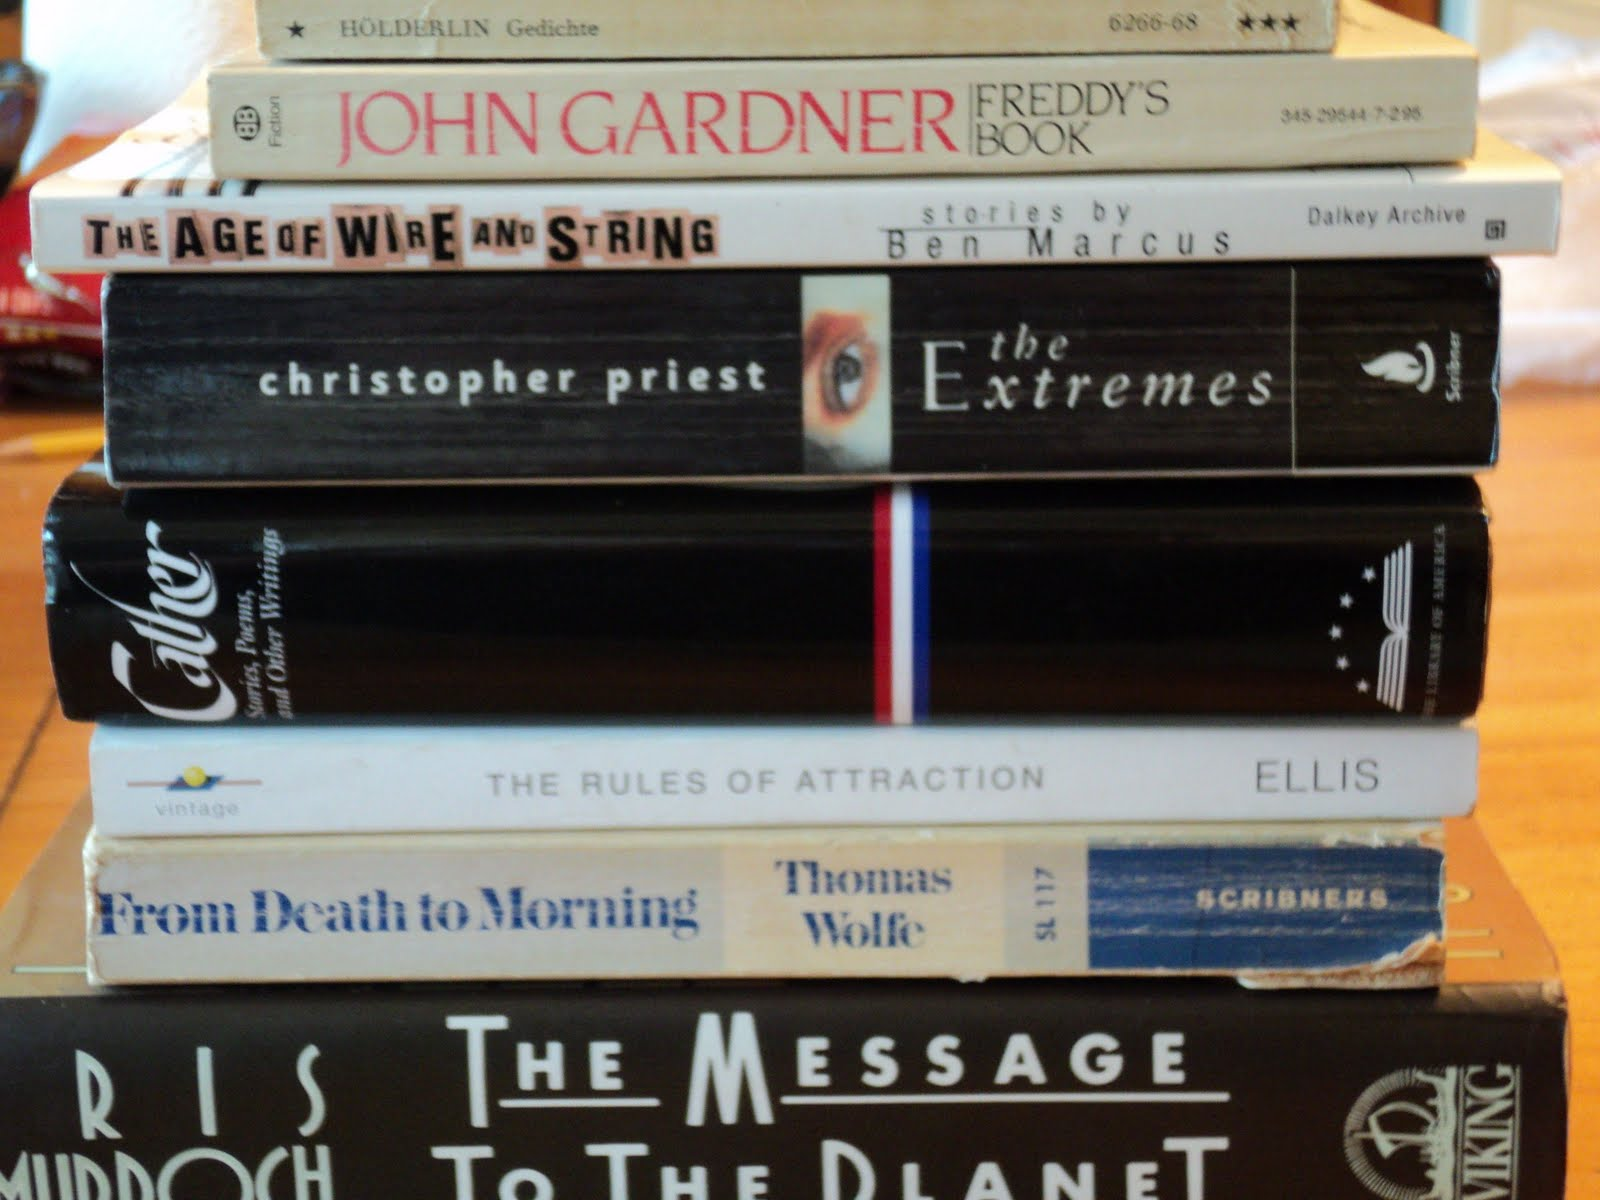 The Gardner Book In Particular Interests, As Does The Wolfe Story  Collection Curious About Iris Murdoch, So She Certainly Will Be Read  Shortly